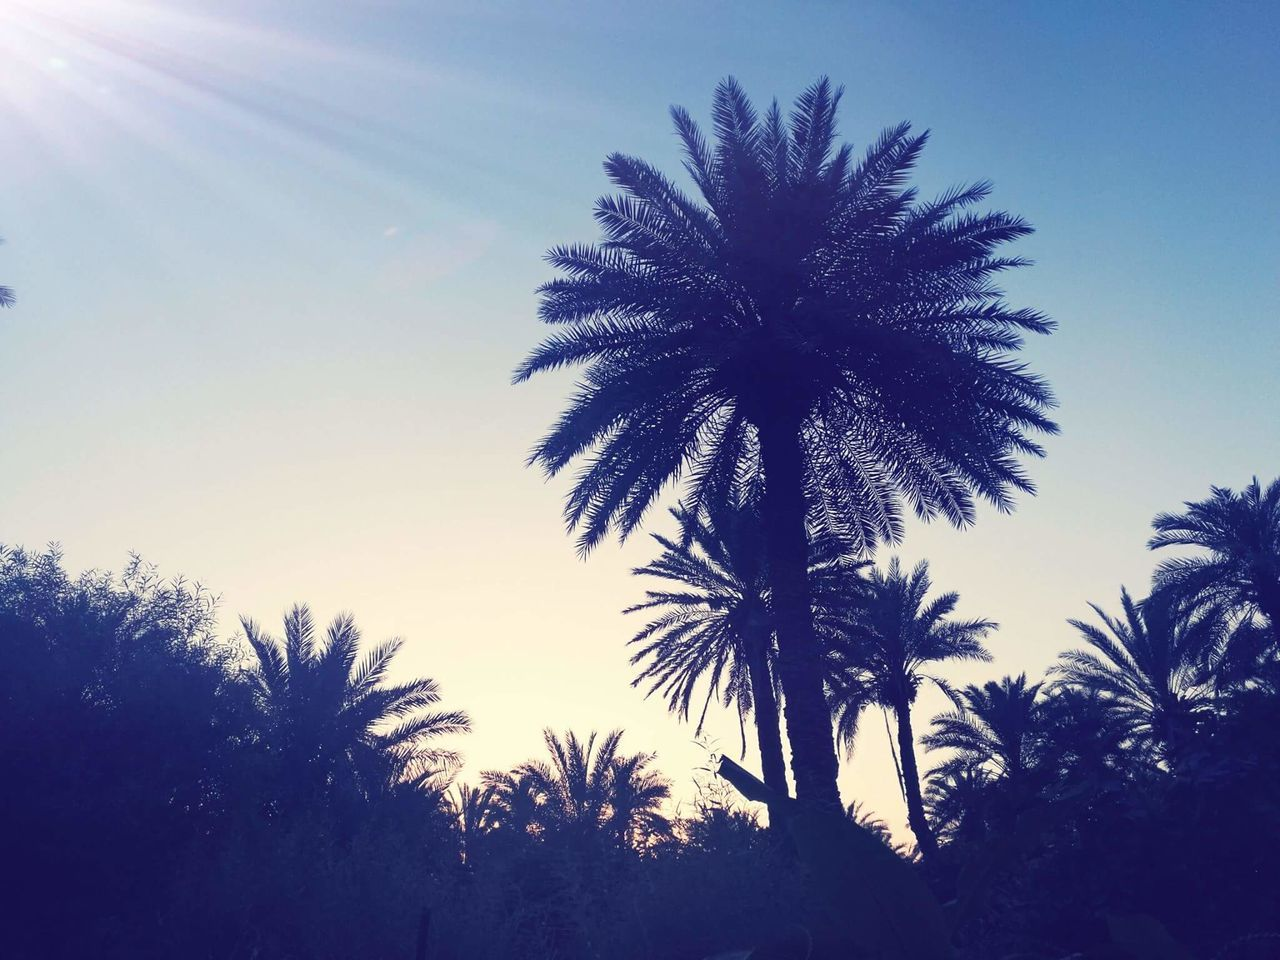 palm tree, tree, low angle view, silhouette, sky, nature, outdoors, no people, growth, beauty in nature, clear sky, sunlight, scenics, day